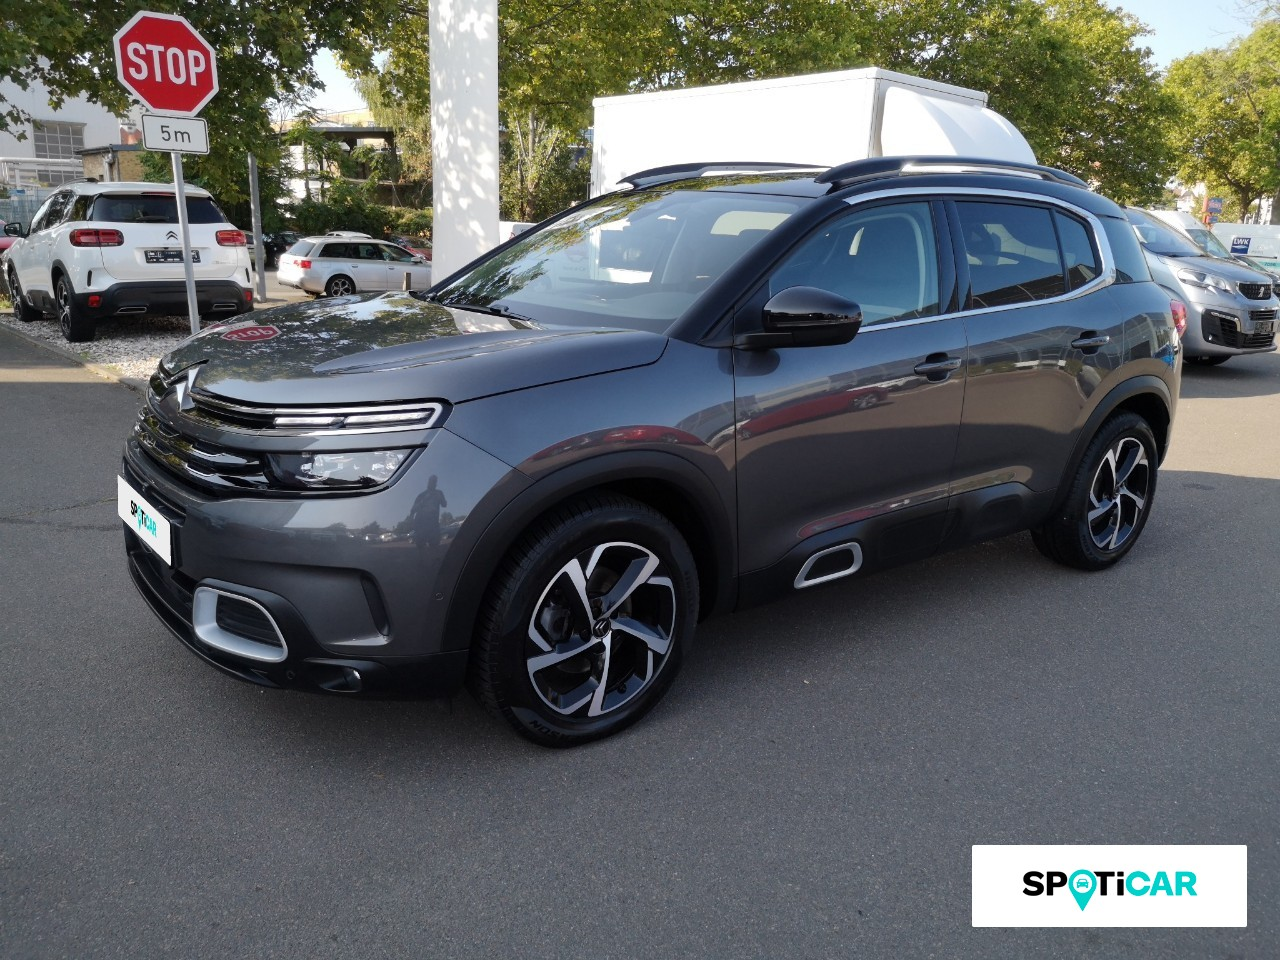 Citroën C5 Aircross SHINE BlueHDI 180 EAT8/ Navi/ Keyless/ SHZ